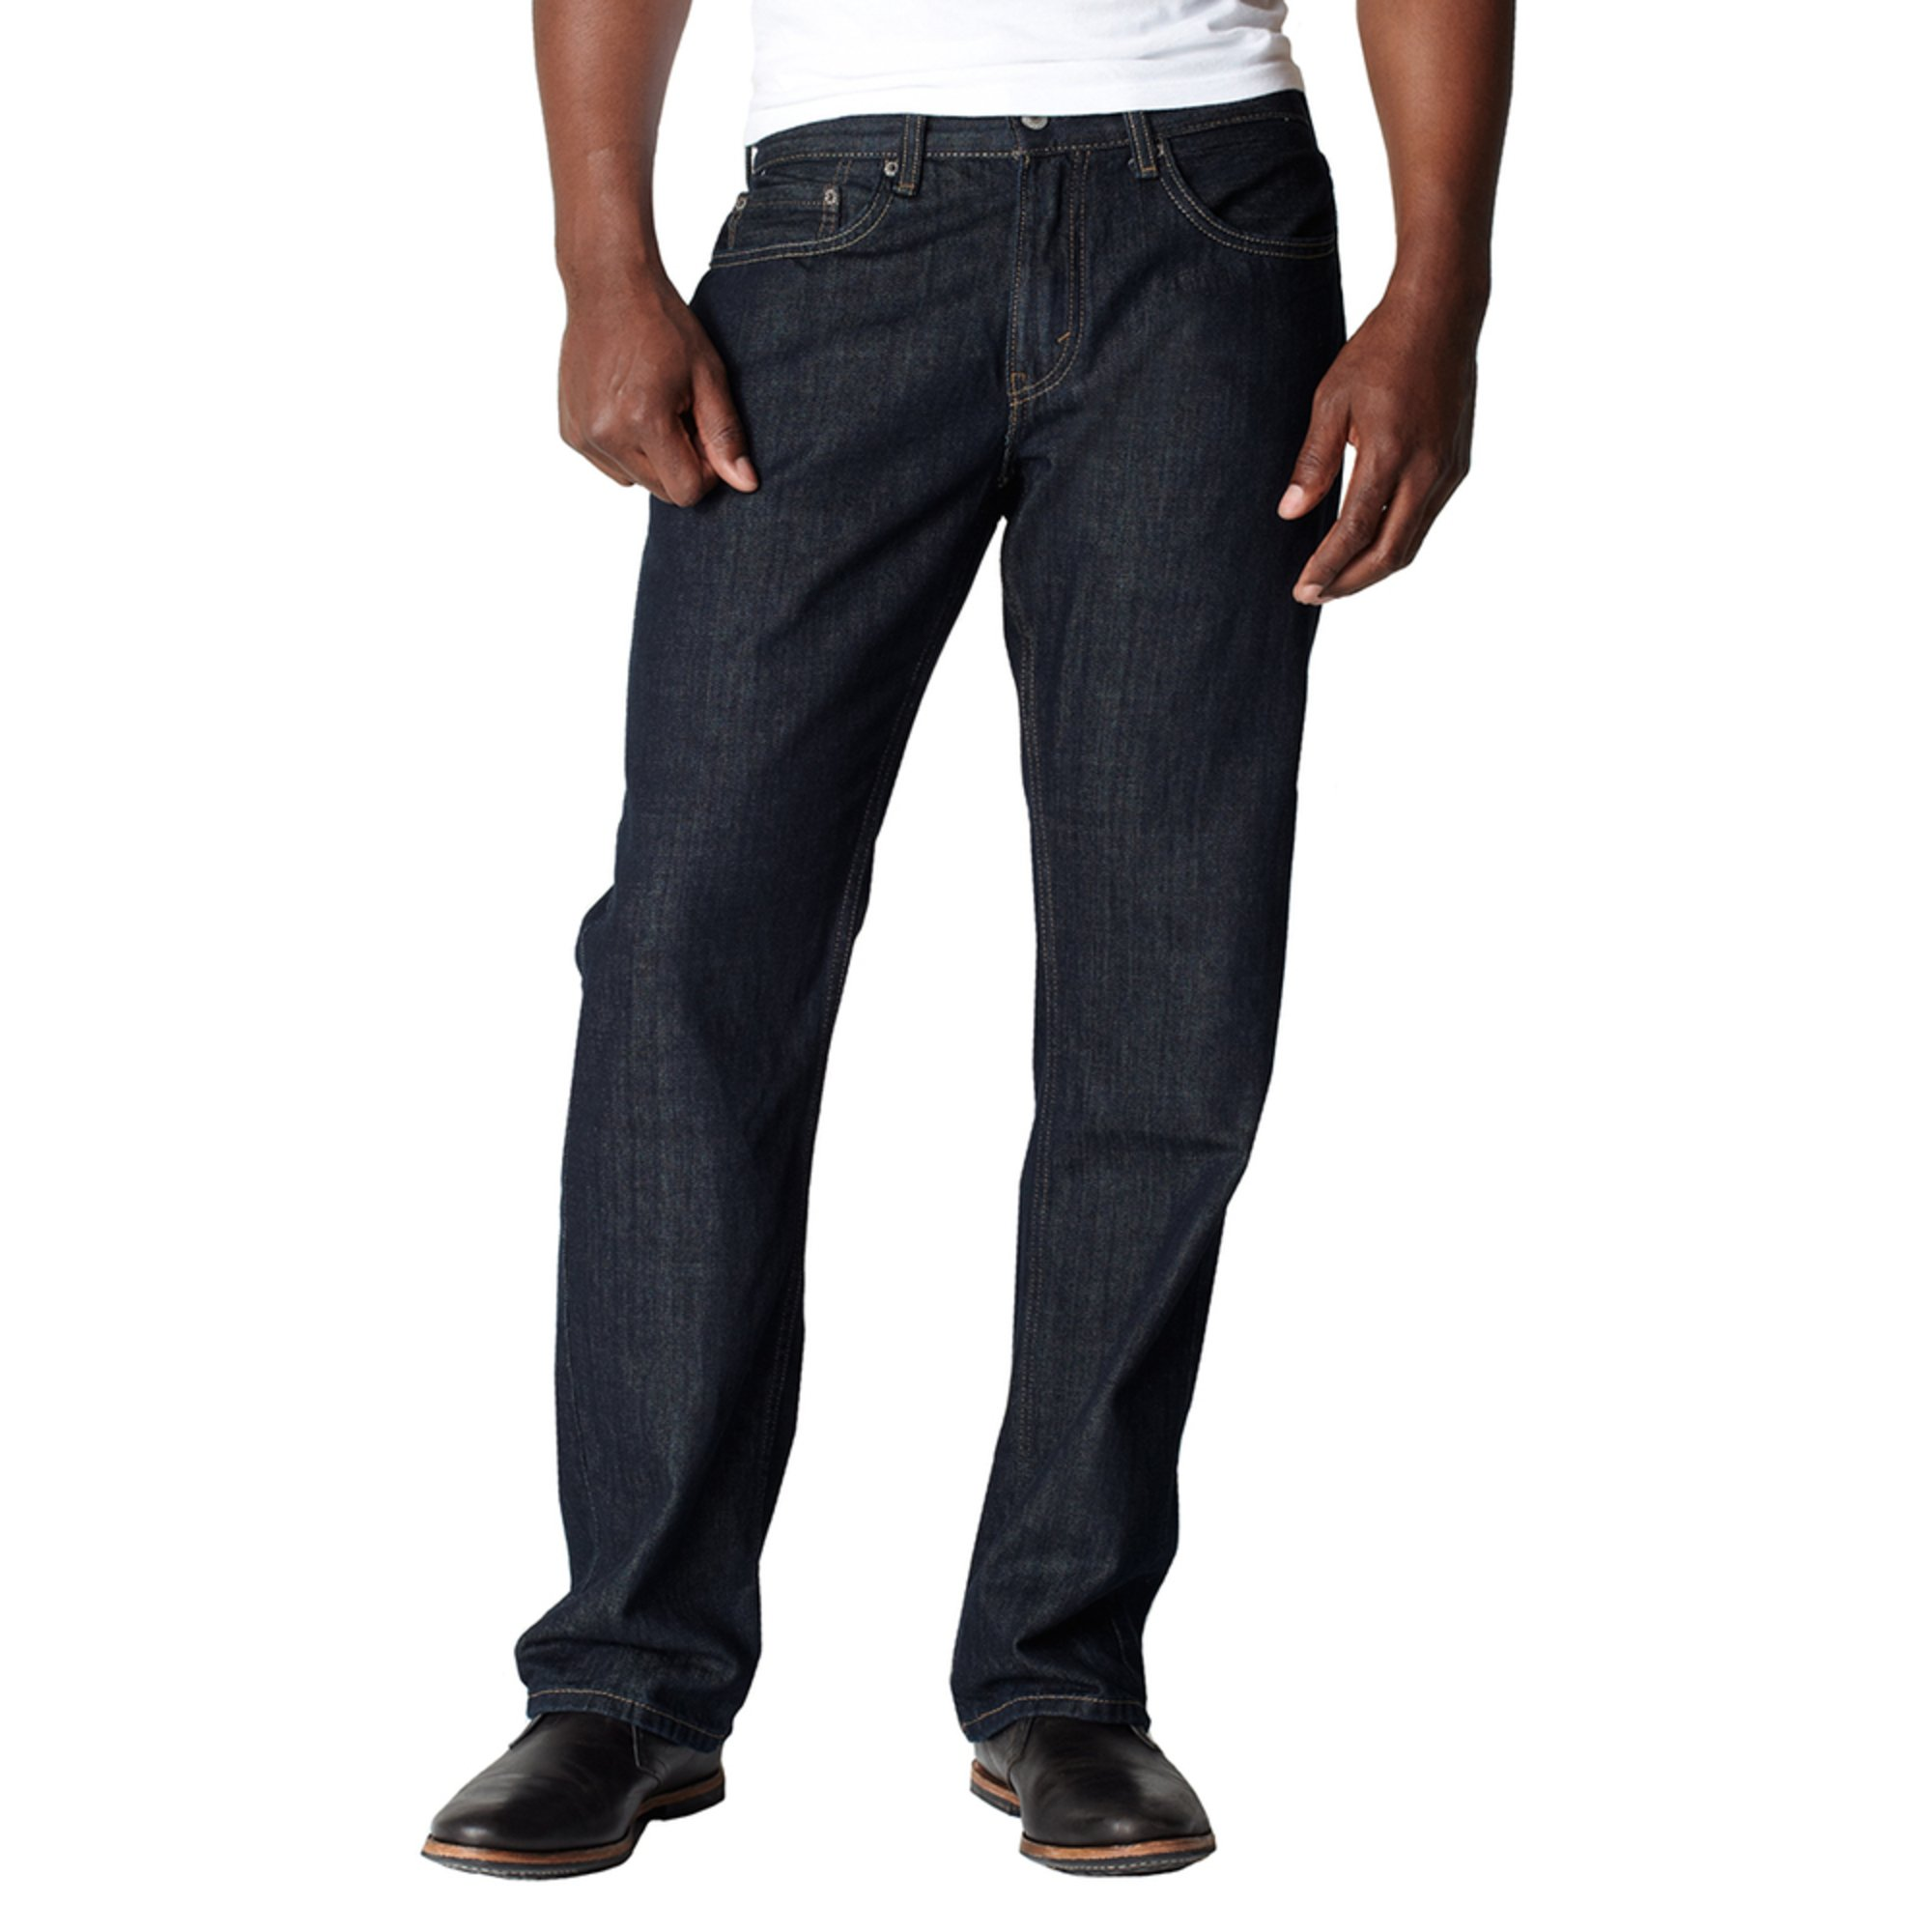 c5dcb49545b5bb Levi's Men's Big & Tall 559 Relaxed Fit Straight Leg Jeans | Men's ...